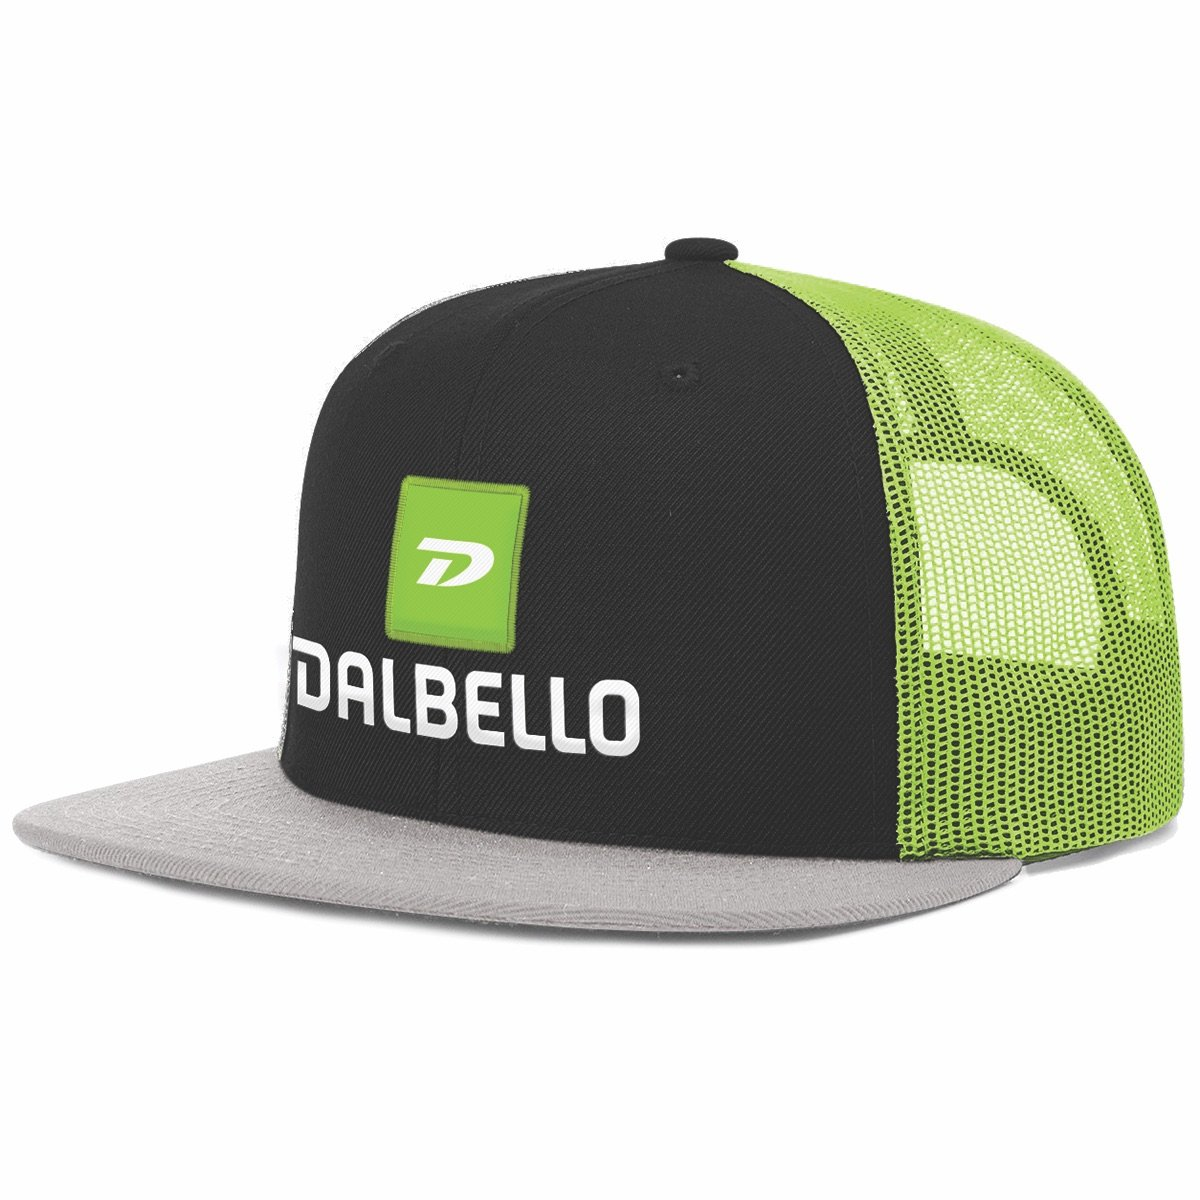 Dalbello Team Hat